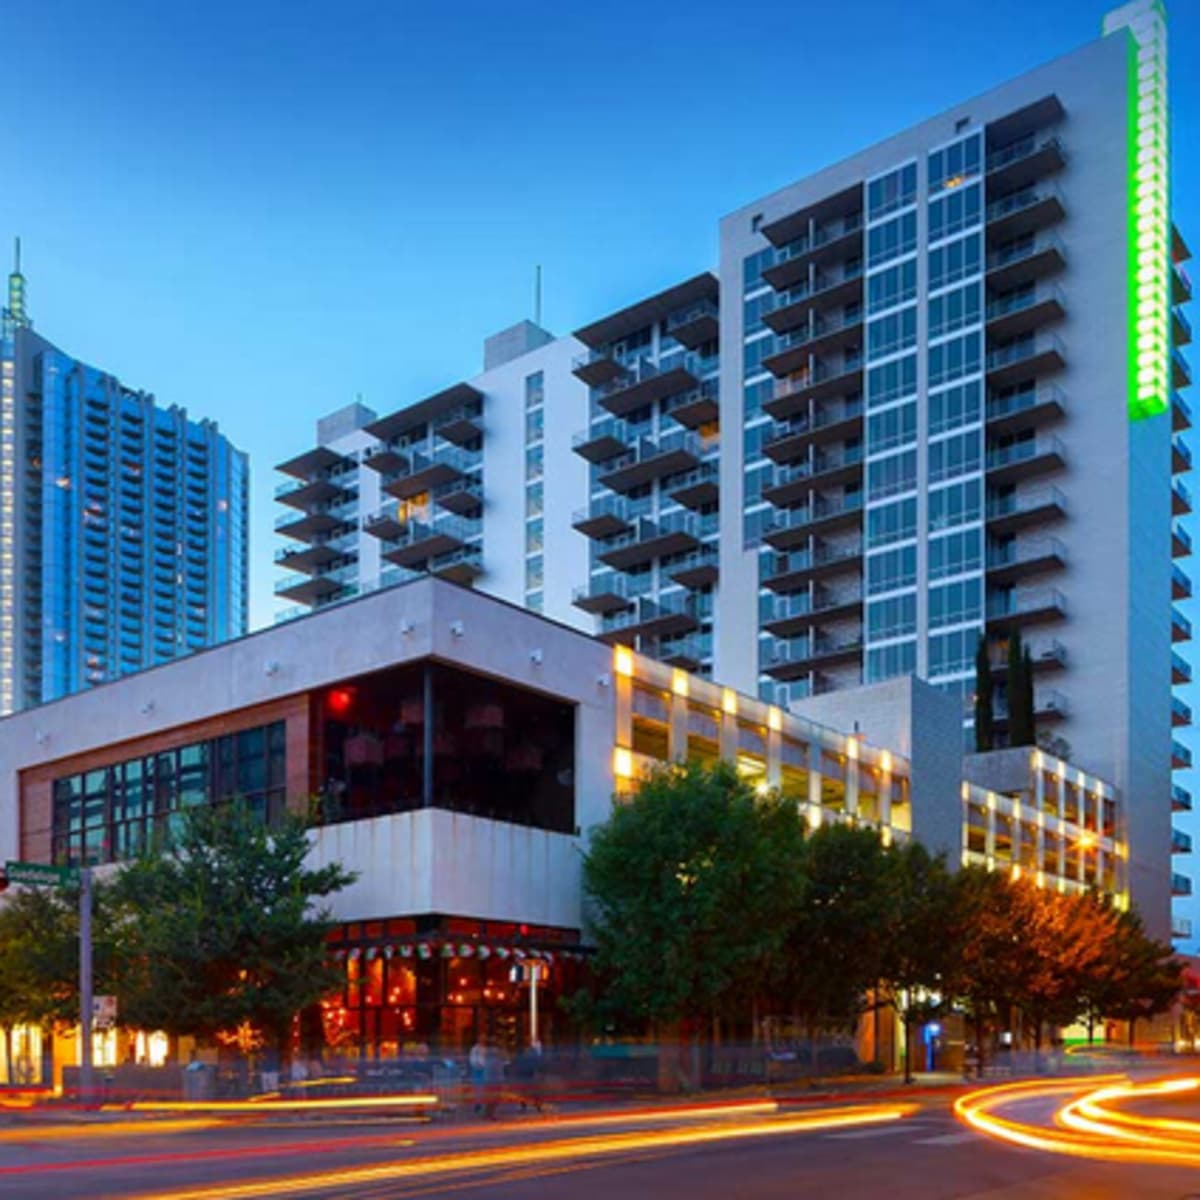 Amli downtown Austin apartment